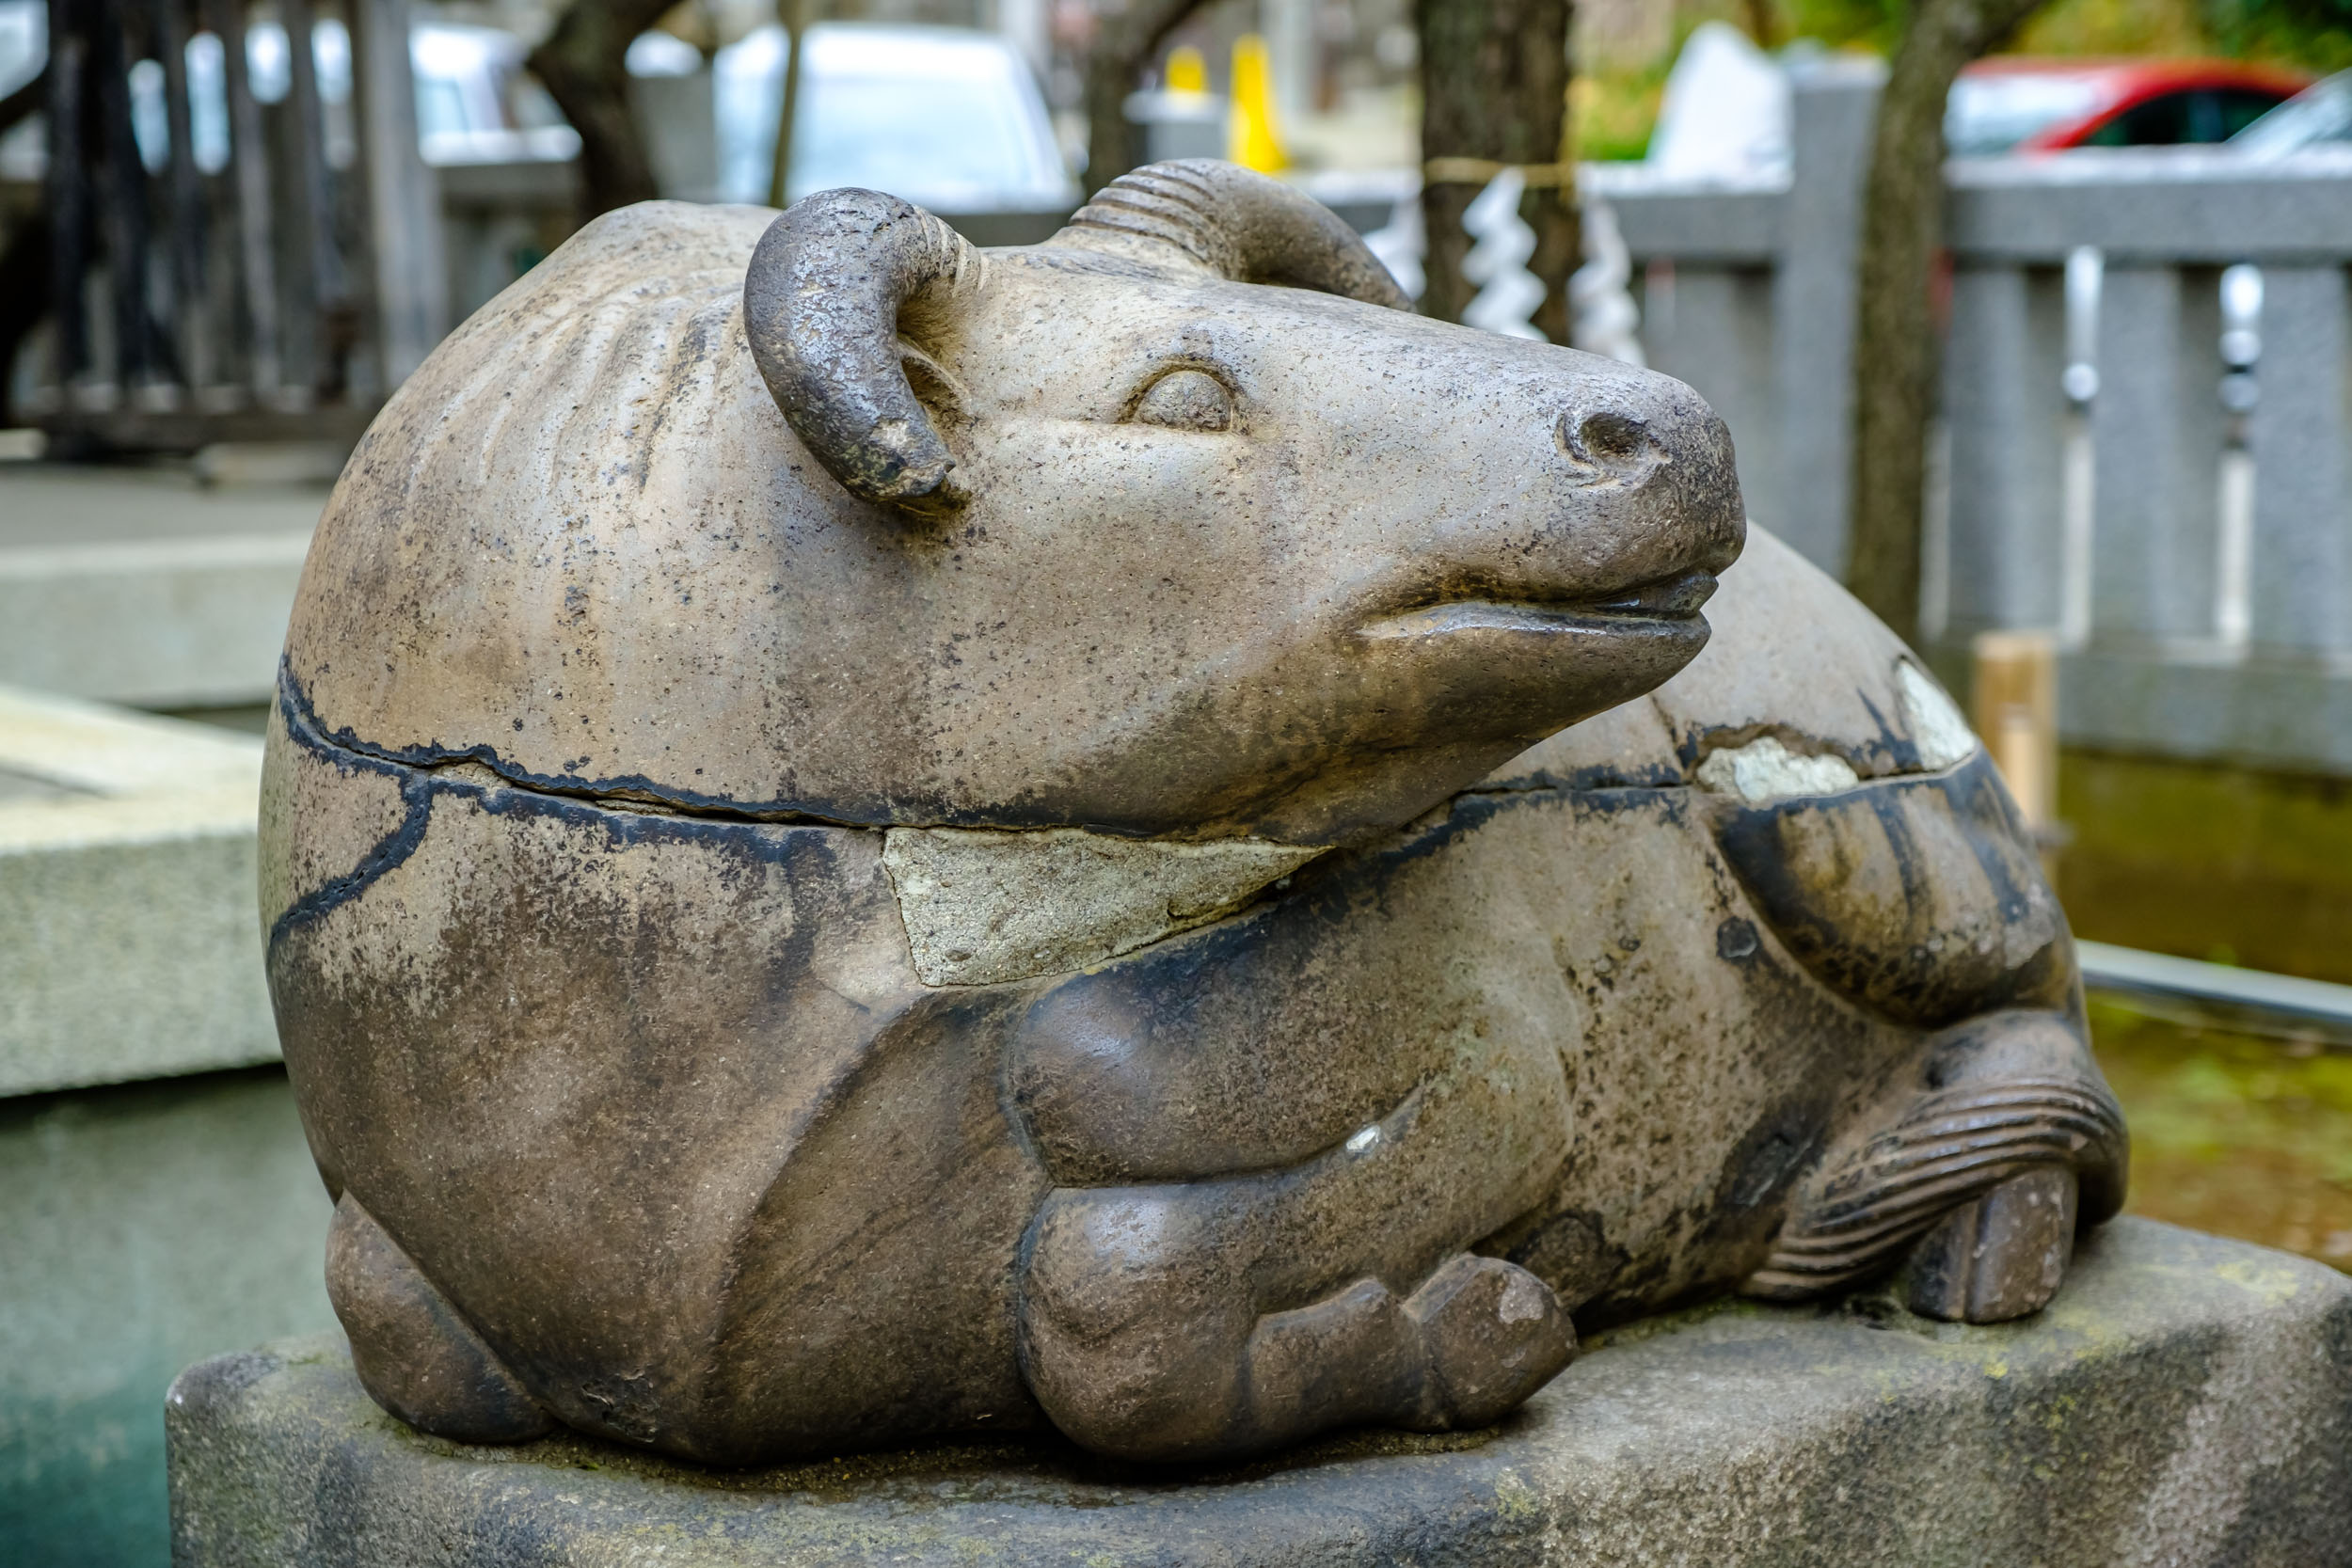 Bulls are one of the things that make a Tenjin shrine. Just make sure to rub its head and then yours!